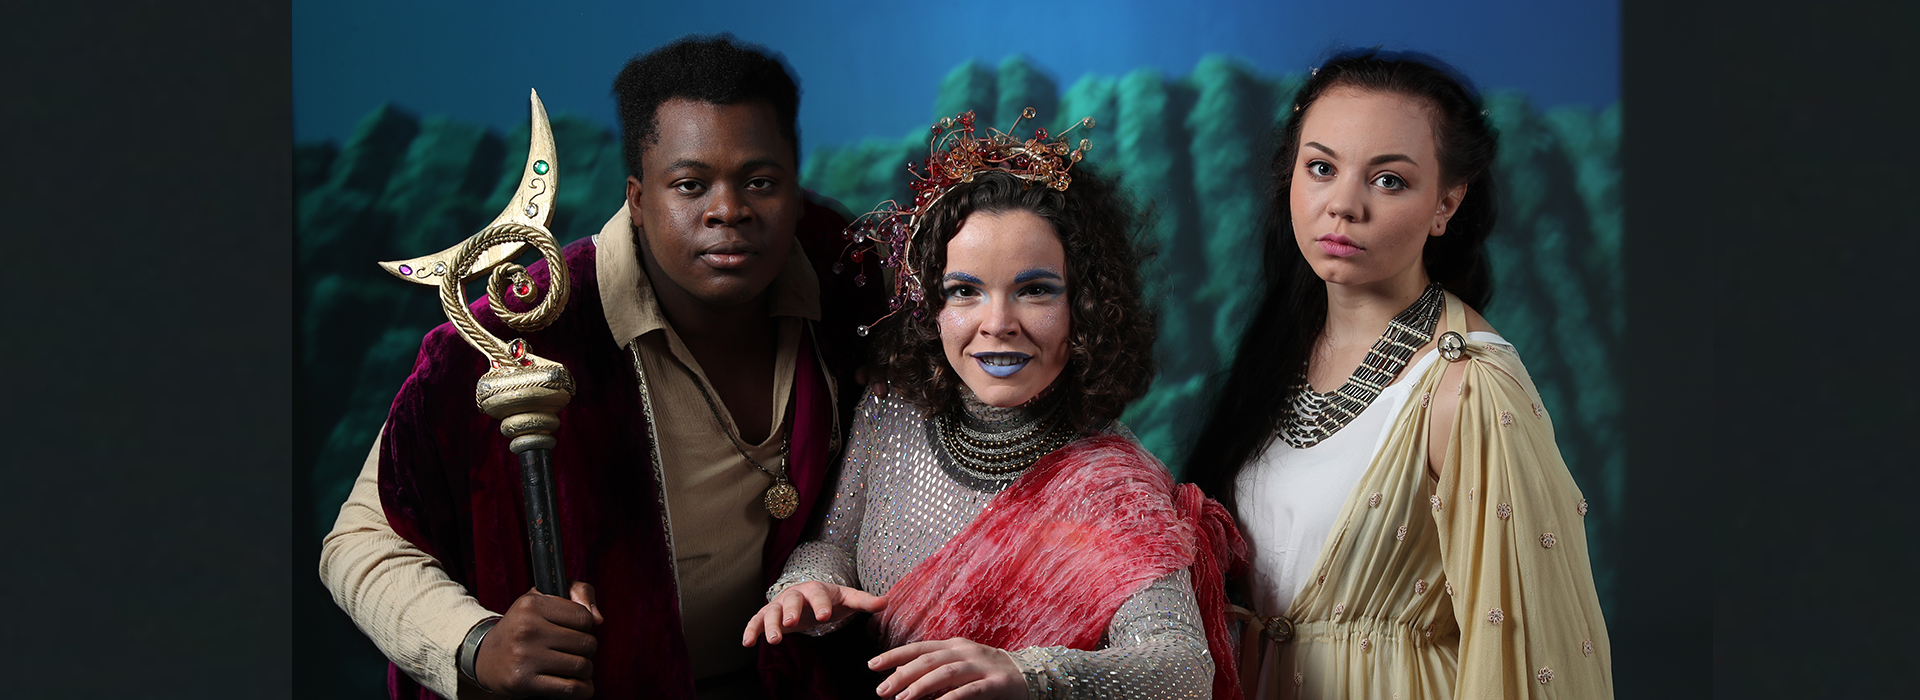 William Shakespeare's 'The Tempest' brings magic back to the Barnes stage